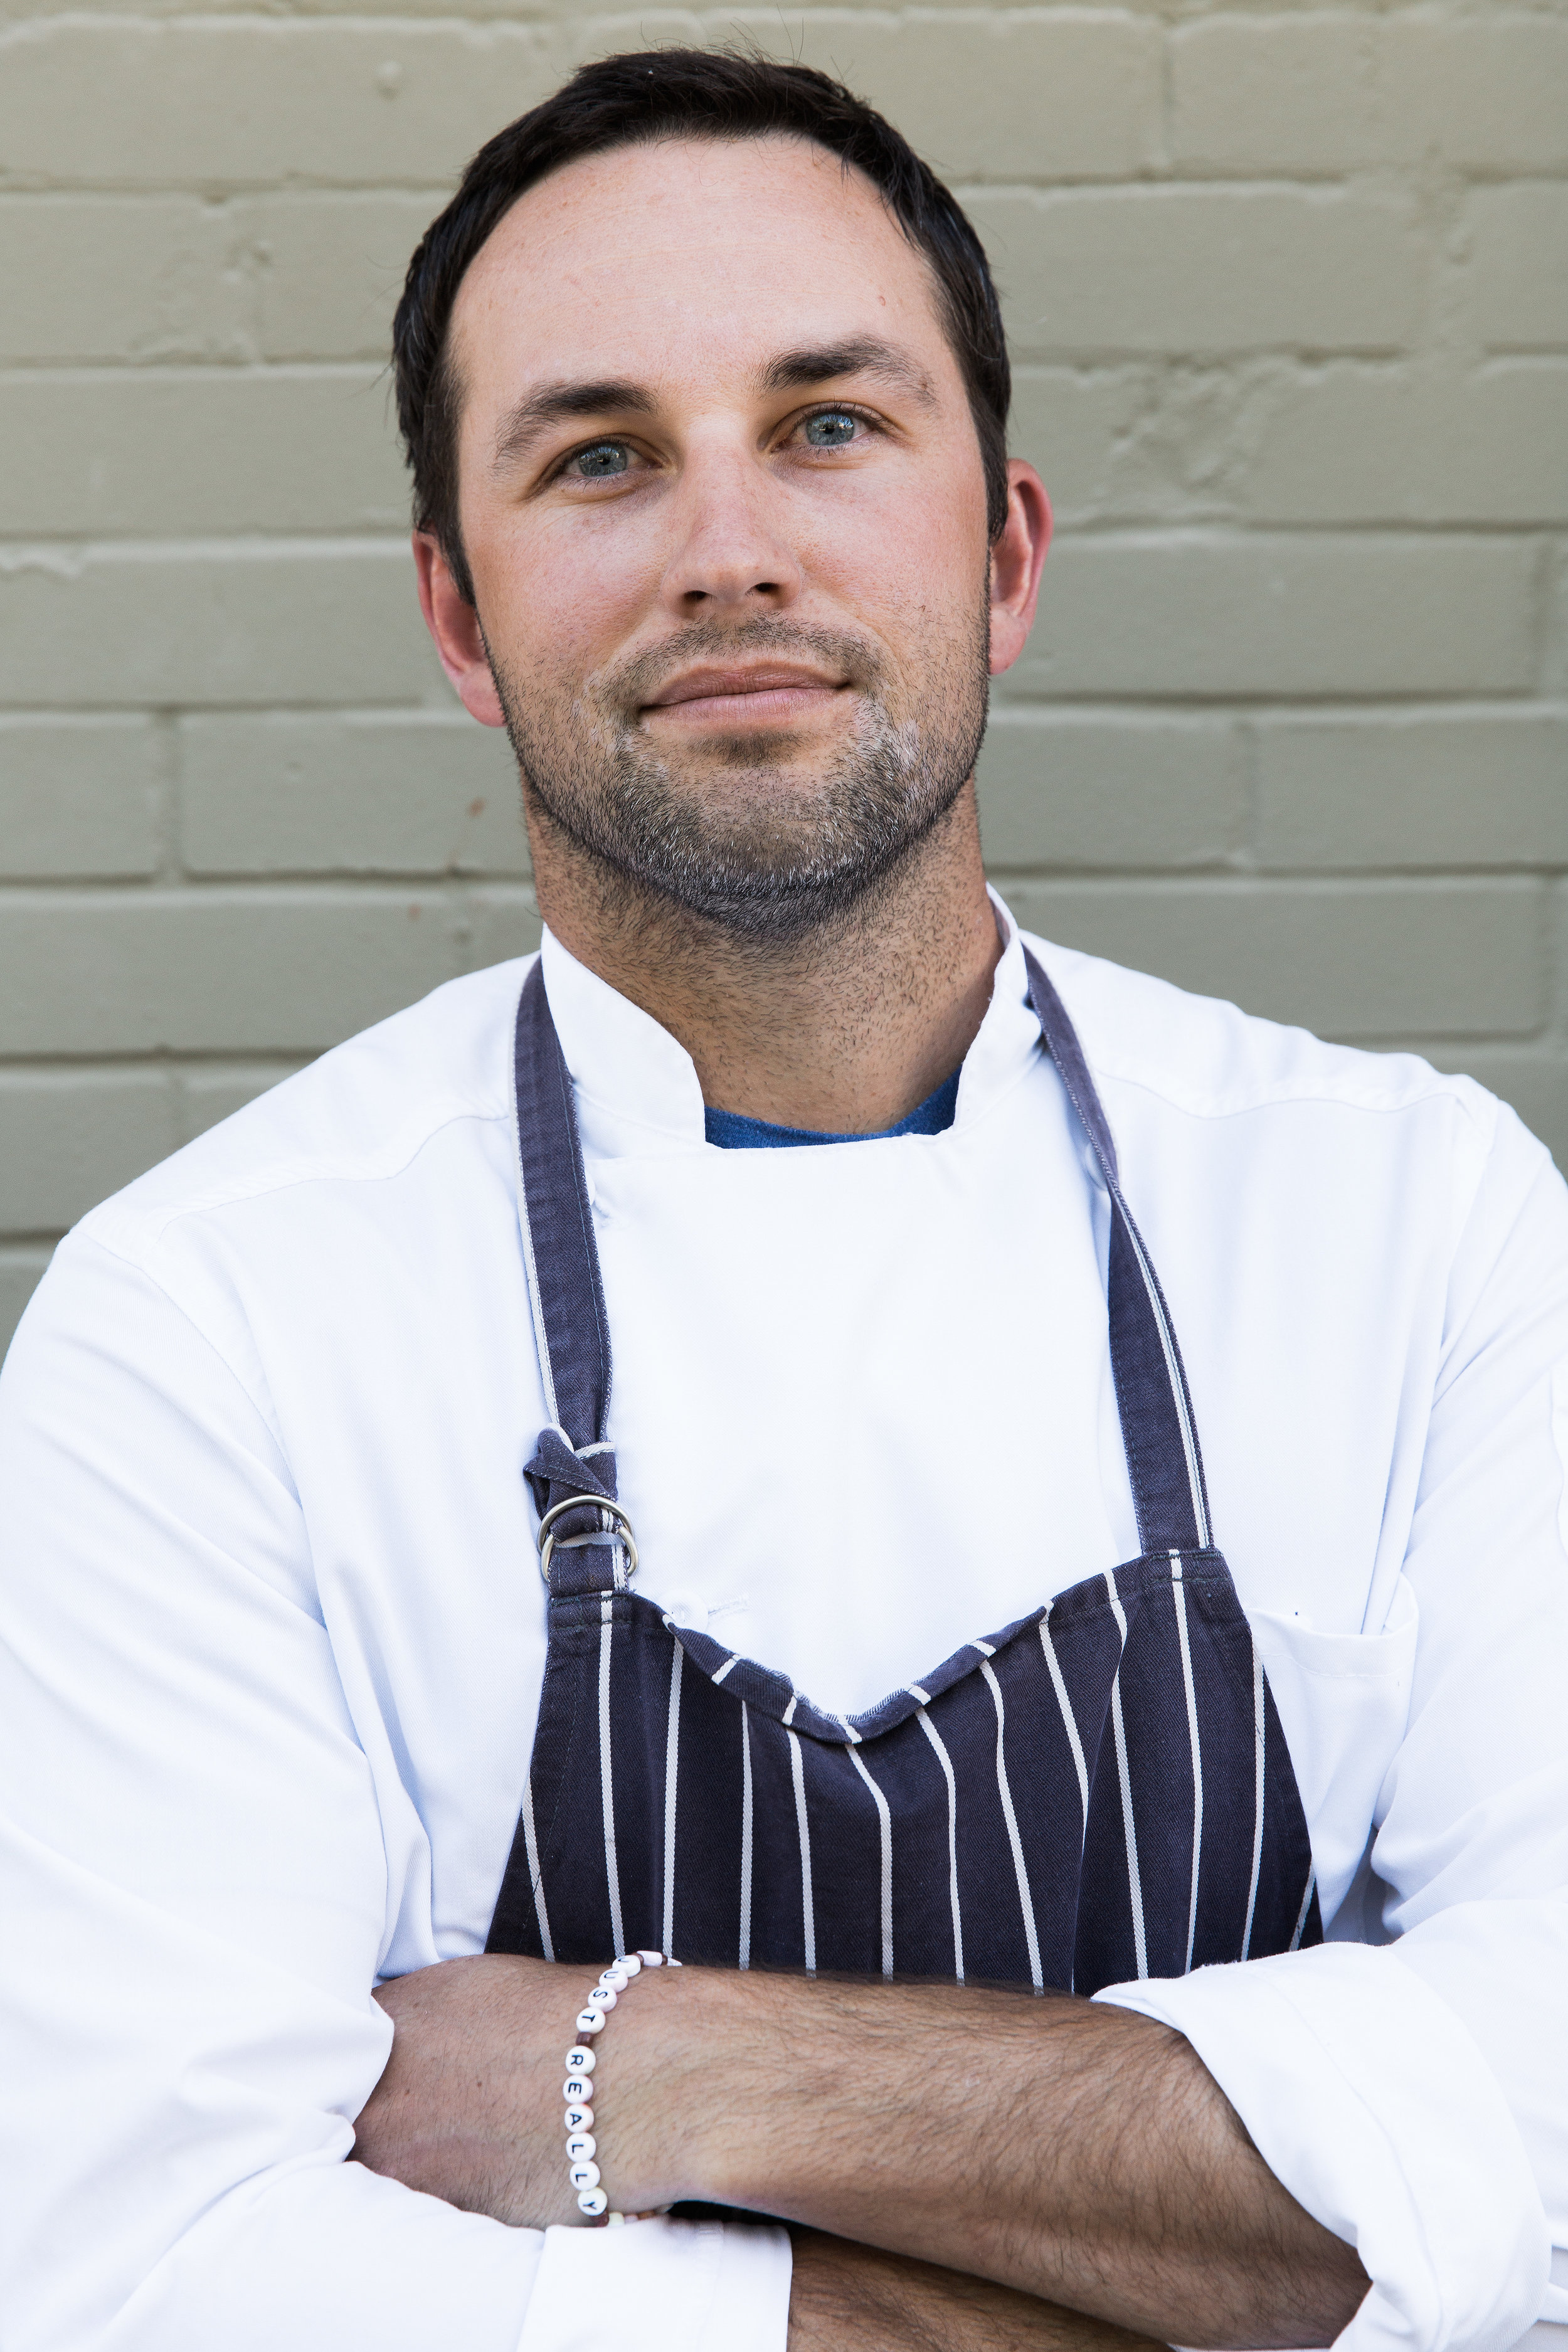 """Chef Hansell has been featured twice in """"Best Chefs of America"""" and """"Best Chefs the American South,"""" in PBS.org kitchen careers, and the Braiser.com in """"the top 10 chefs to know in Birmingham."""" He's been nominated as Food & Wine Best New Chef 2014, representing the Gulf Coast. See more about Chef Hansell at  Oxlot9.com"""